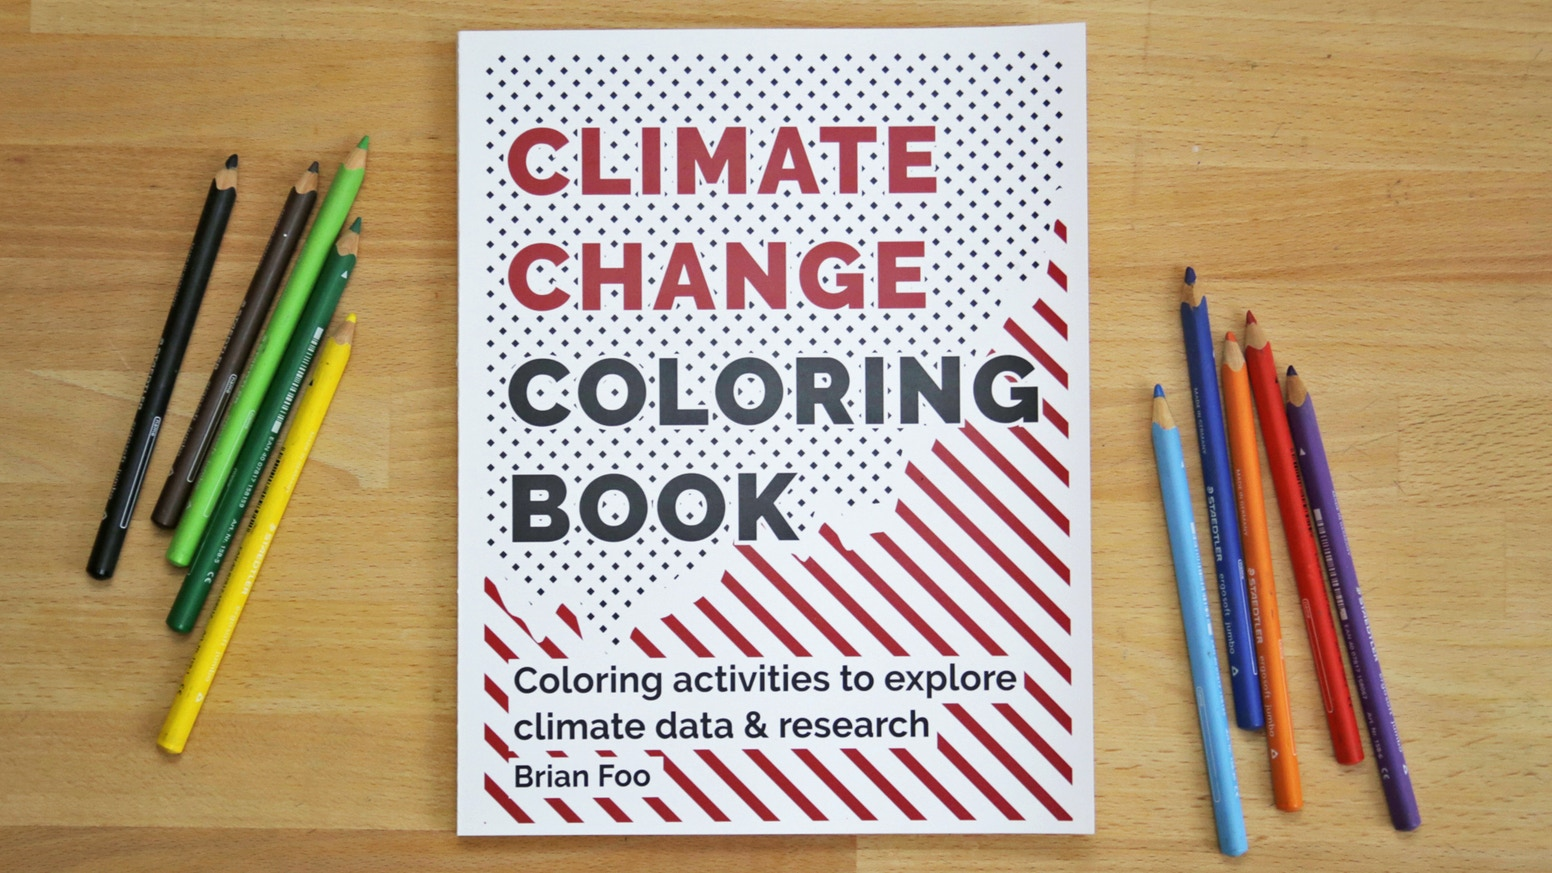 This book contains guided coloring activities that explore scientific research and data related to climate change.